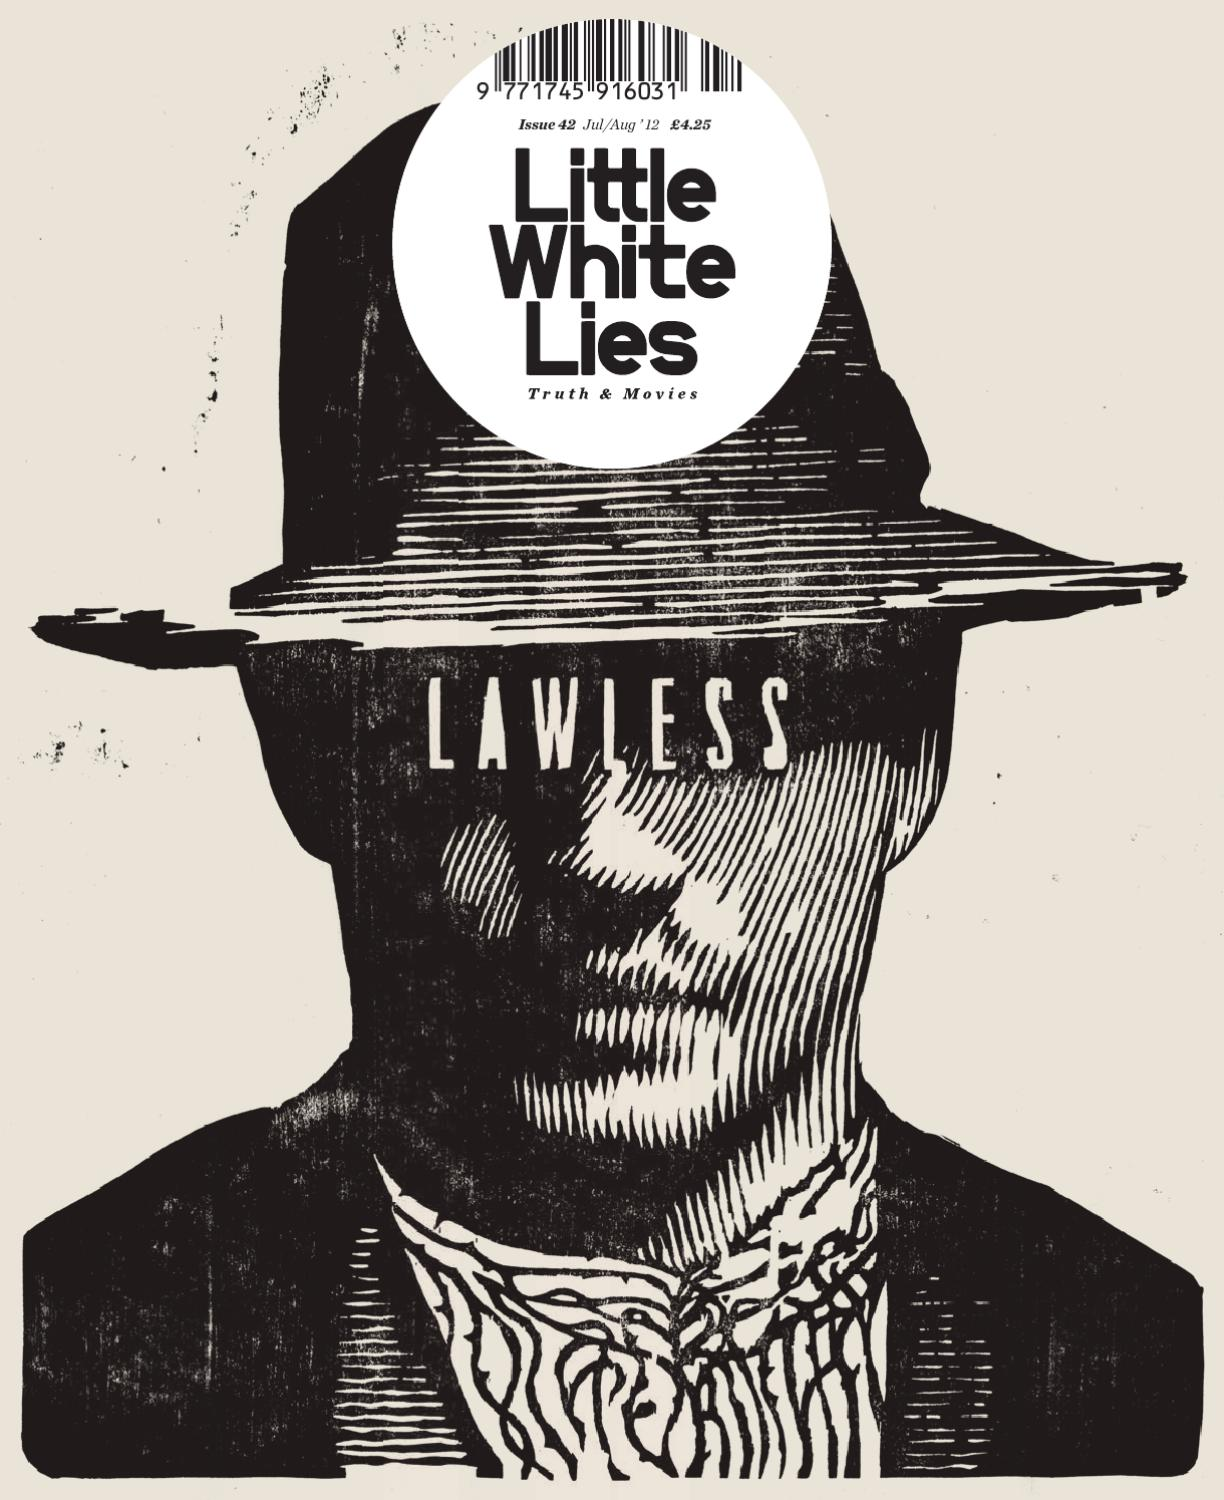 Little White Lies 42 Lawless By The Church Of London Issuu